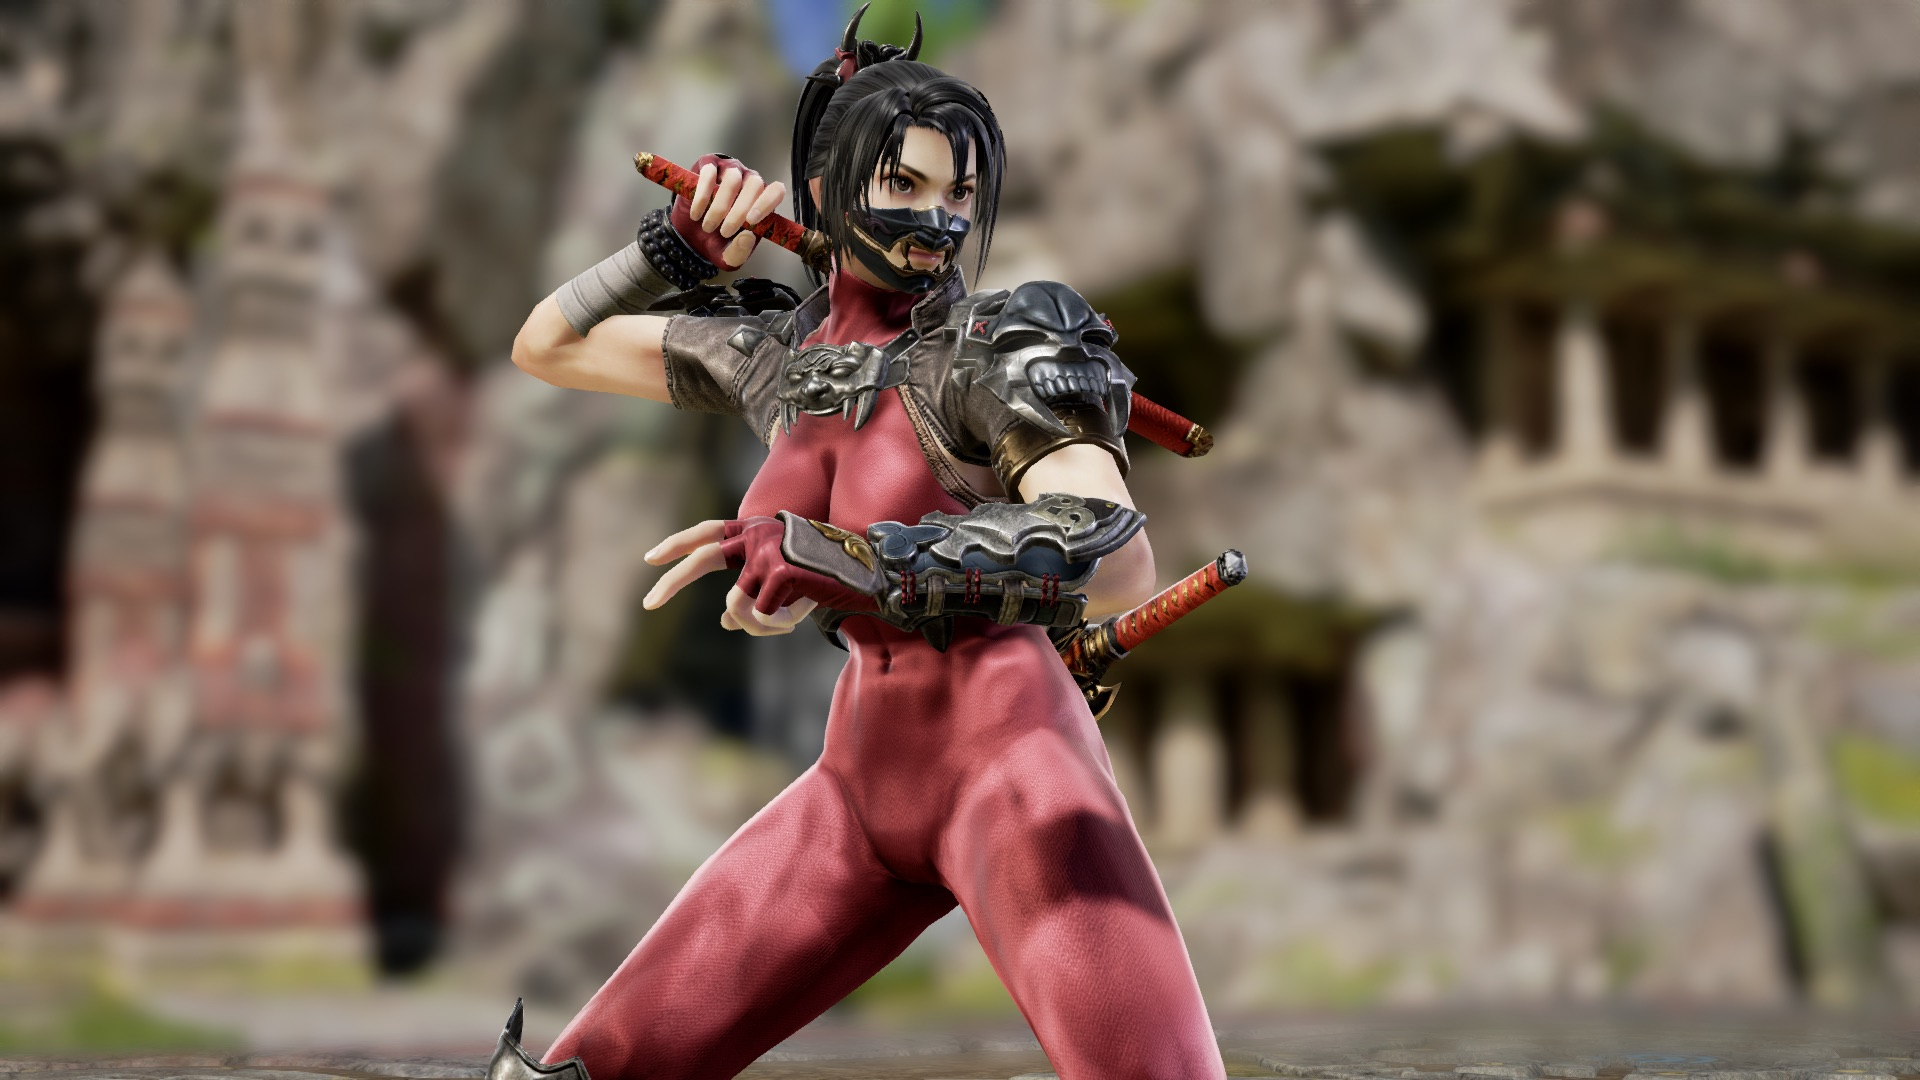 Taki Returns for Soul Calibur VI